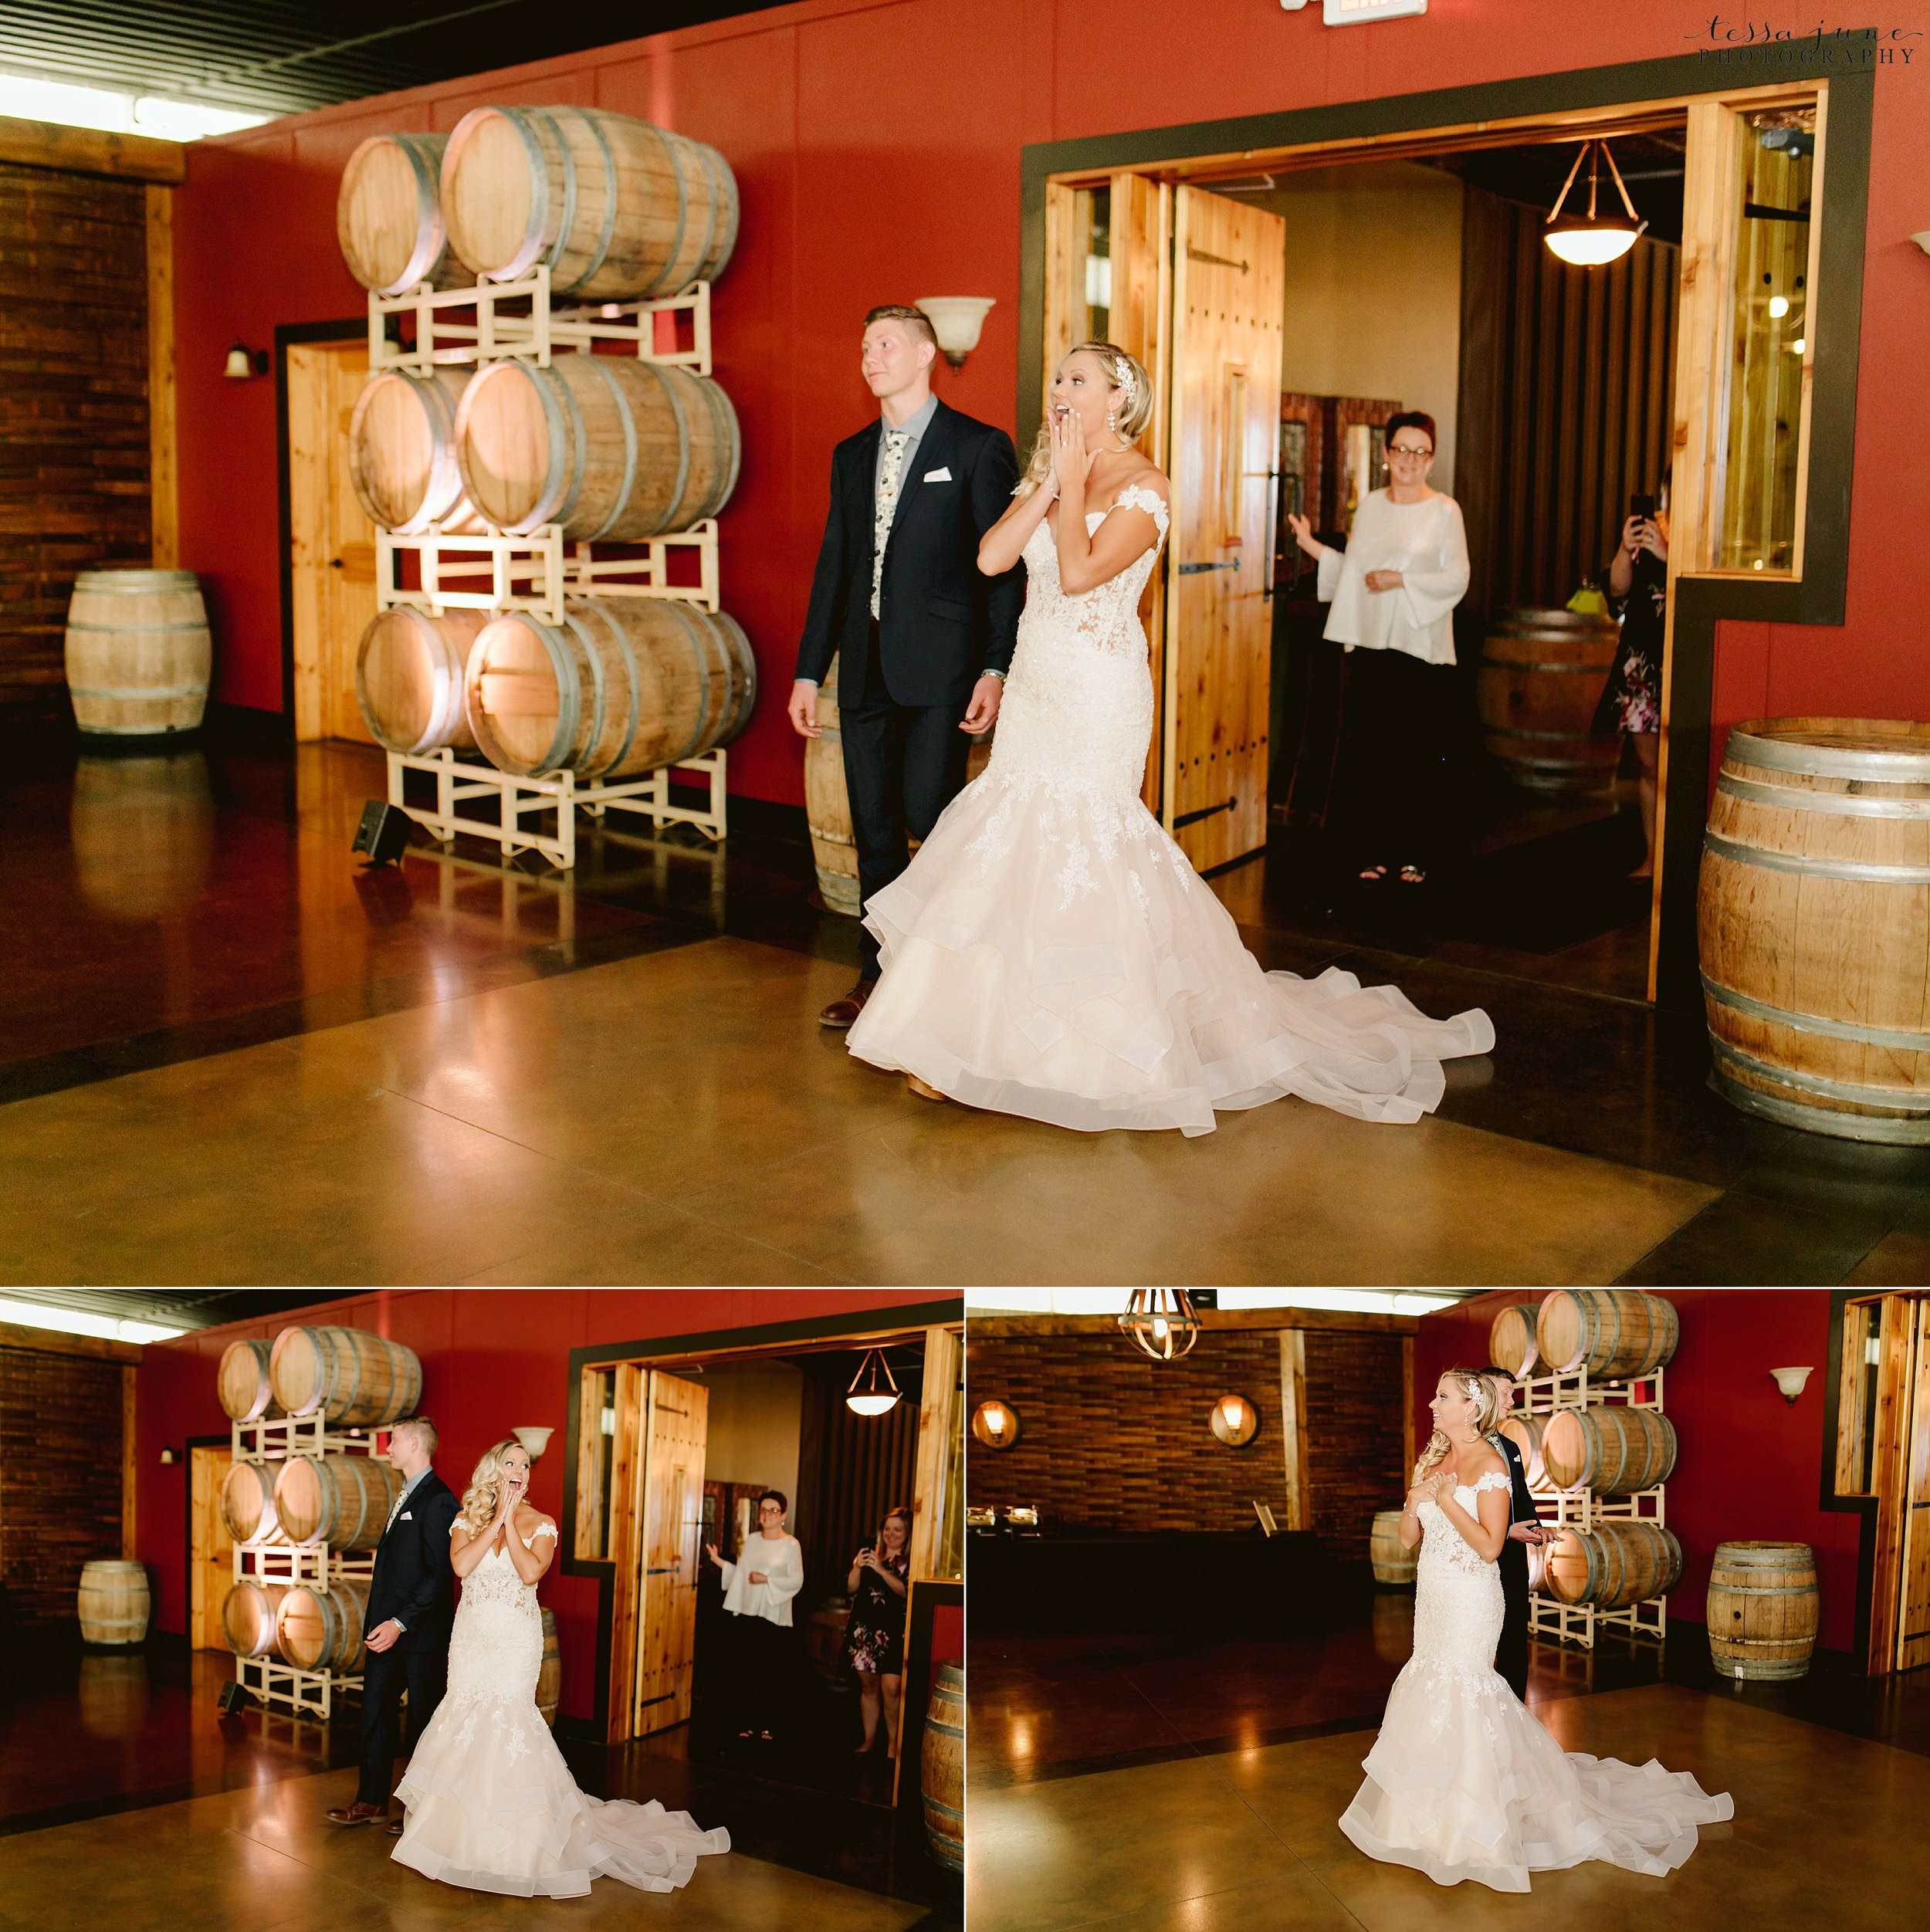 carlos-creek-winery-wedding-alexandria-minnesota-glam-elegant-floral-76.jpg